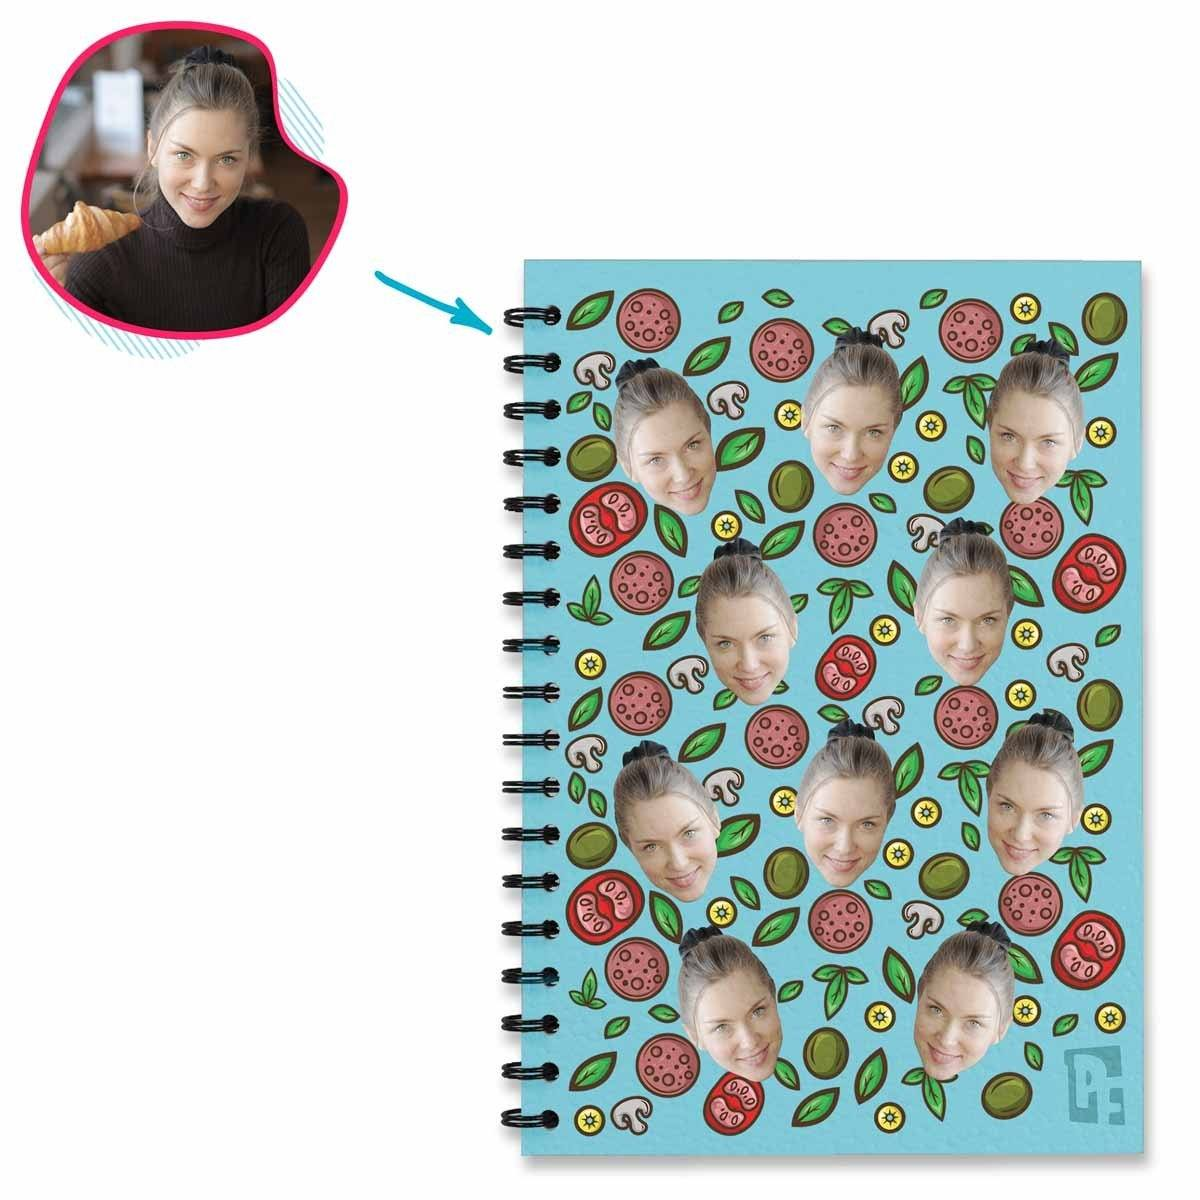 blue Pizza Notebook personalized with photo of face printed on them